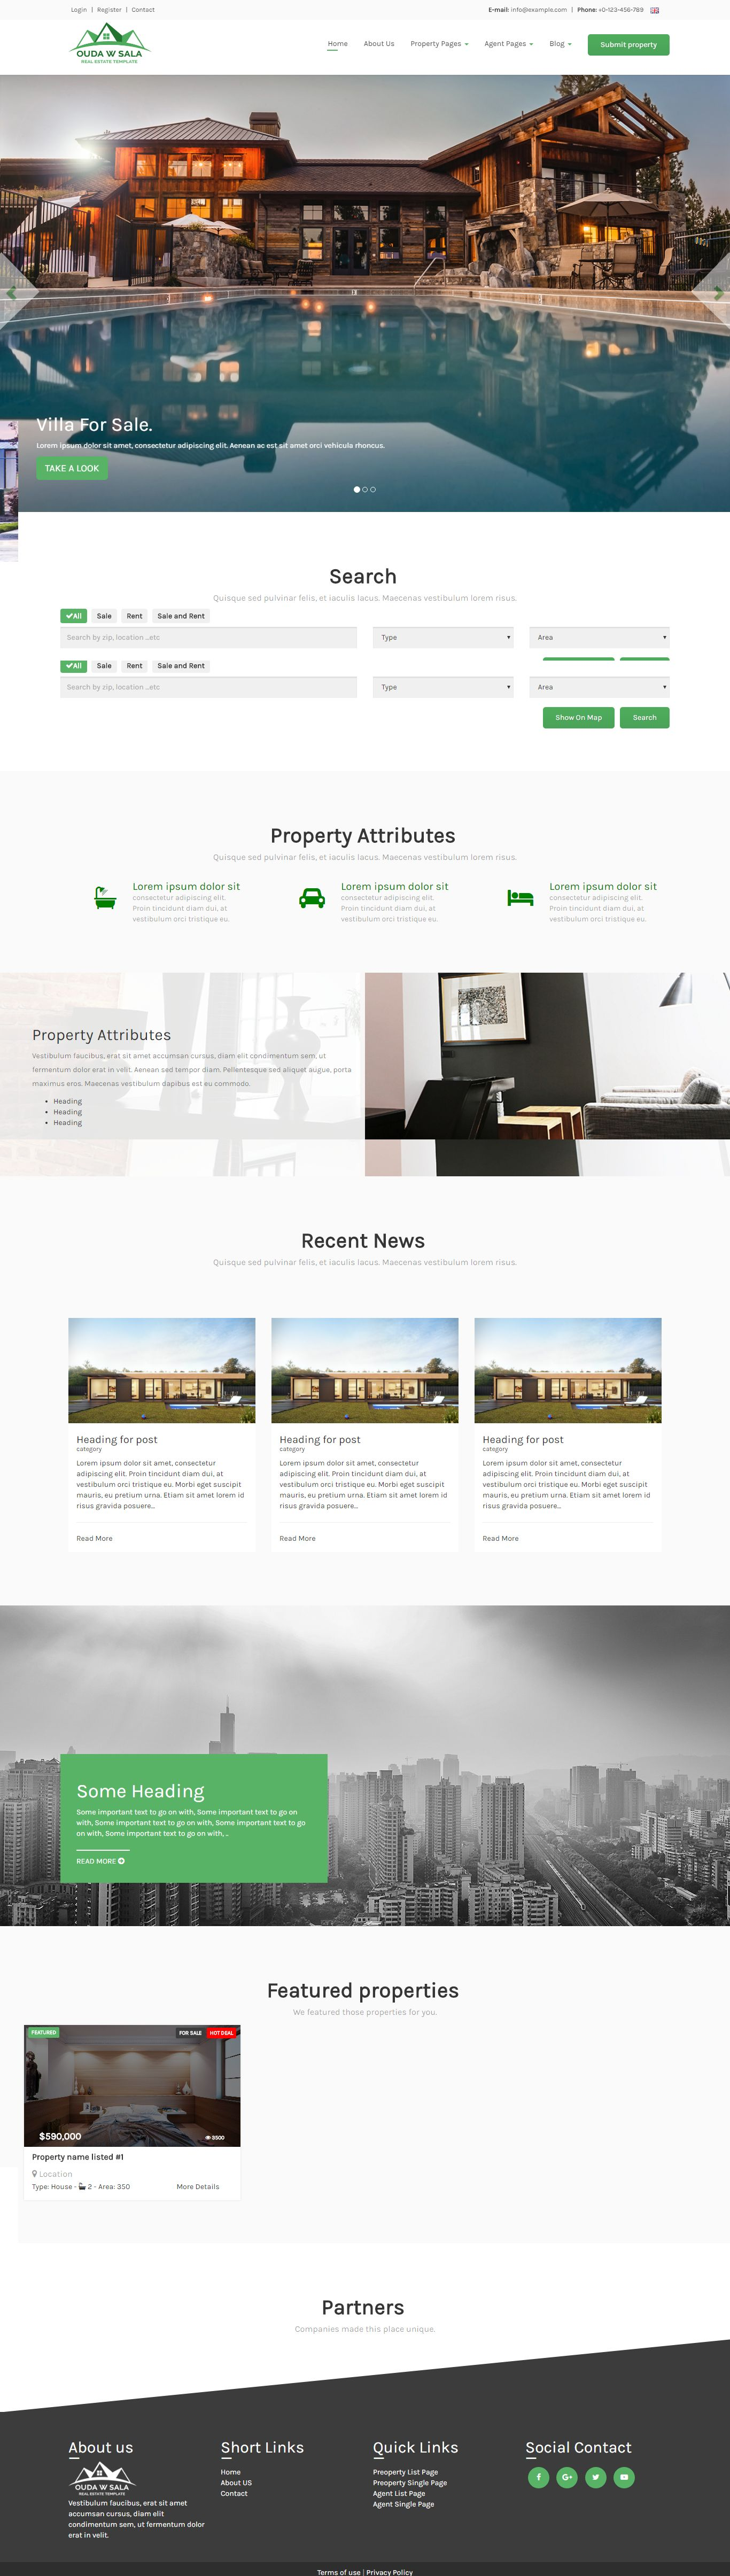 Ouda W Sala - HTML Real Estate Template Screenshot 3